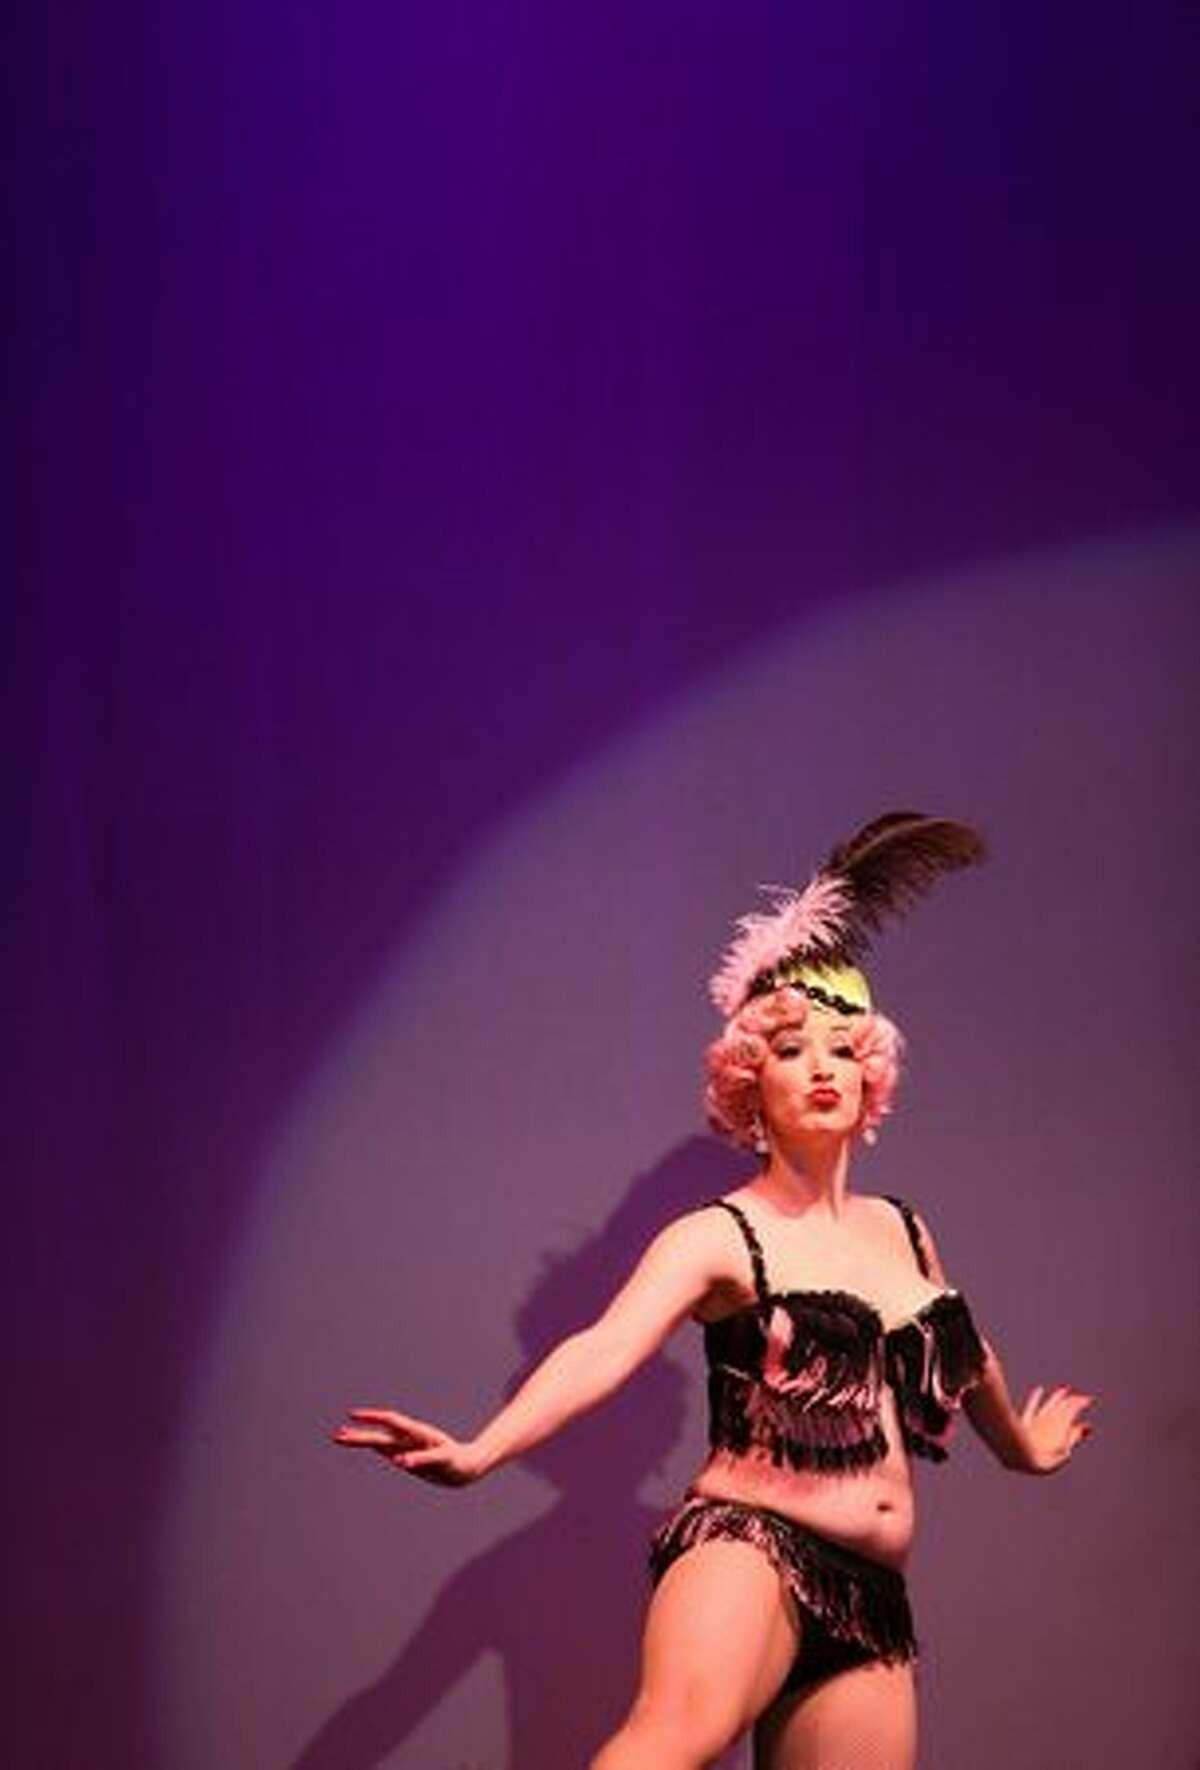 Miss Lily Verlaine performs during the Valentine's Day show with the Atomic Bombshells.